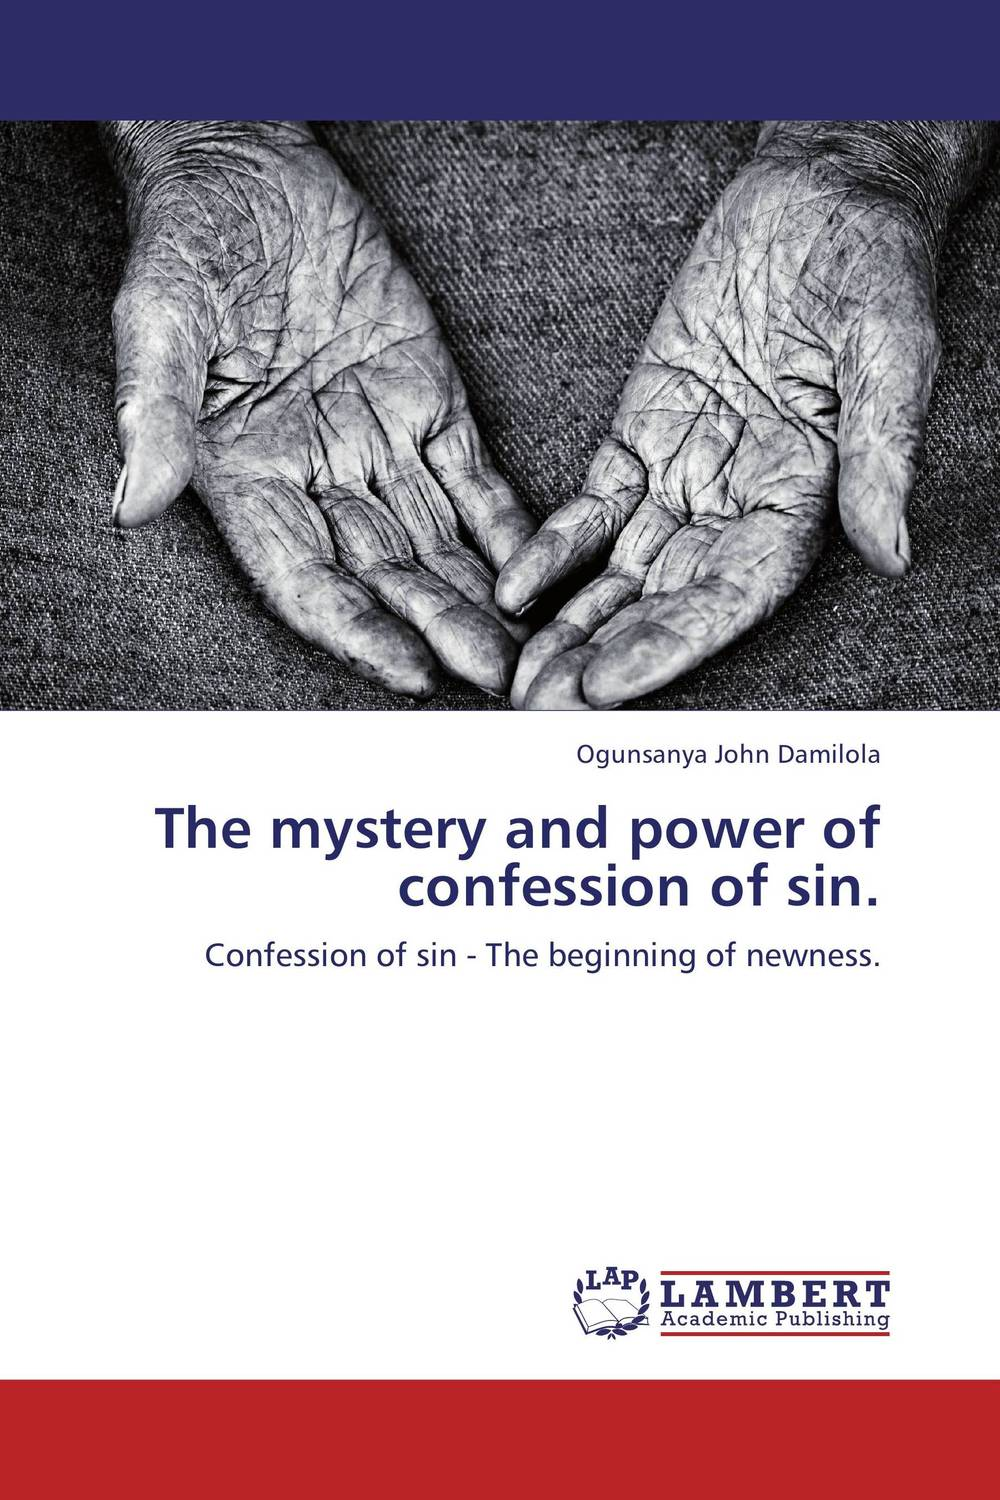 The mystery and power of confession of sin. all we shall know